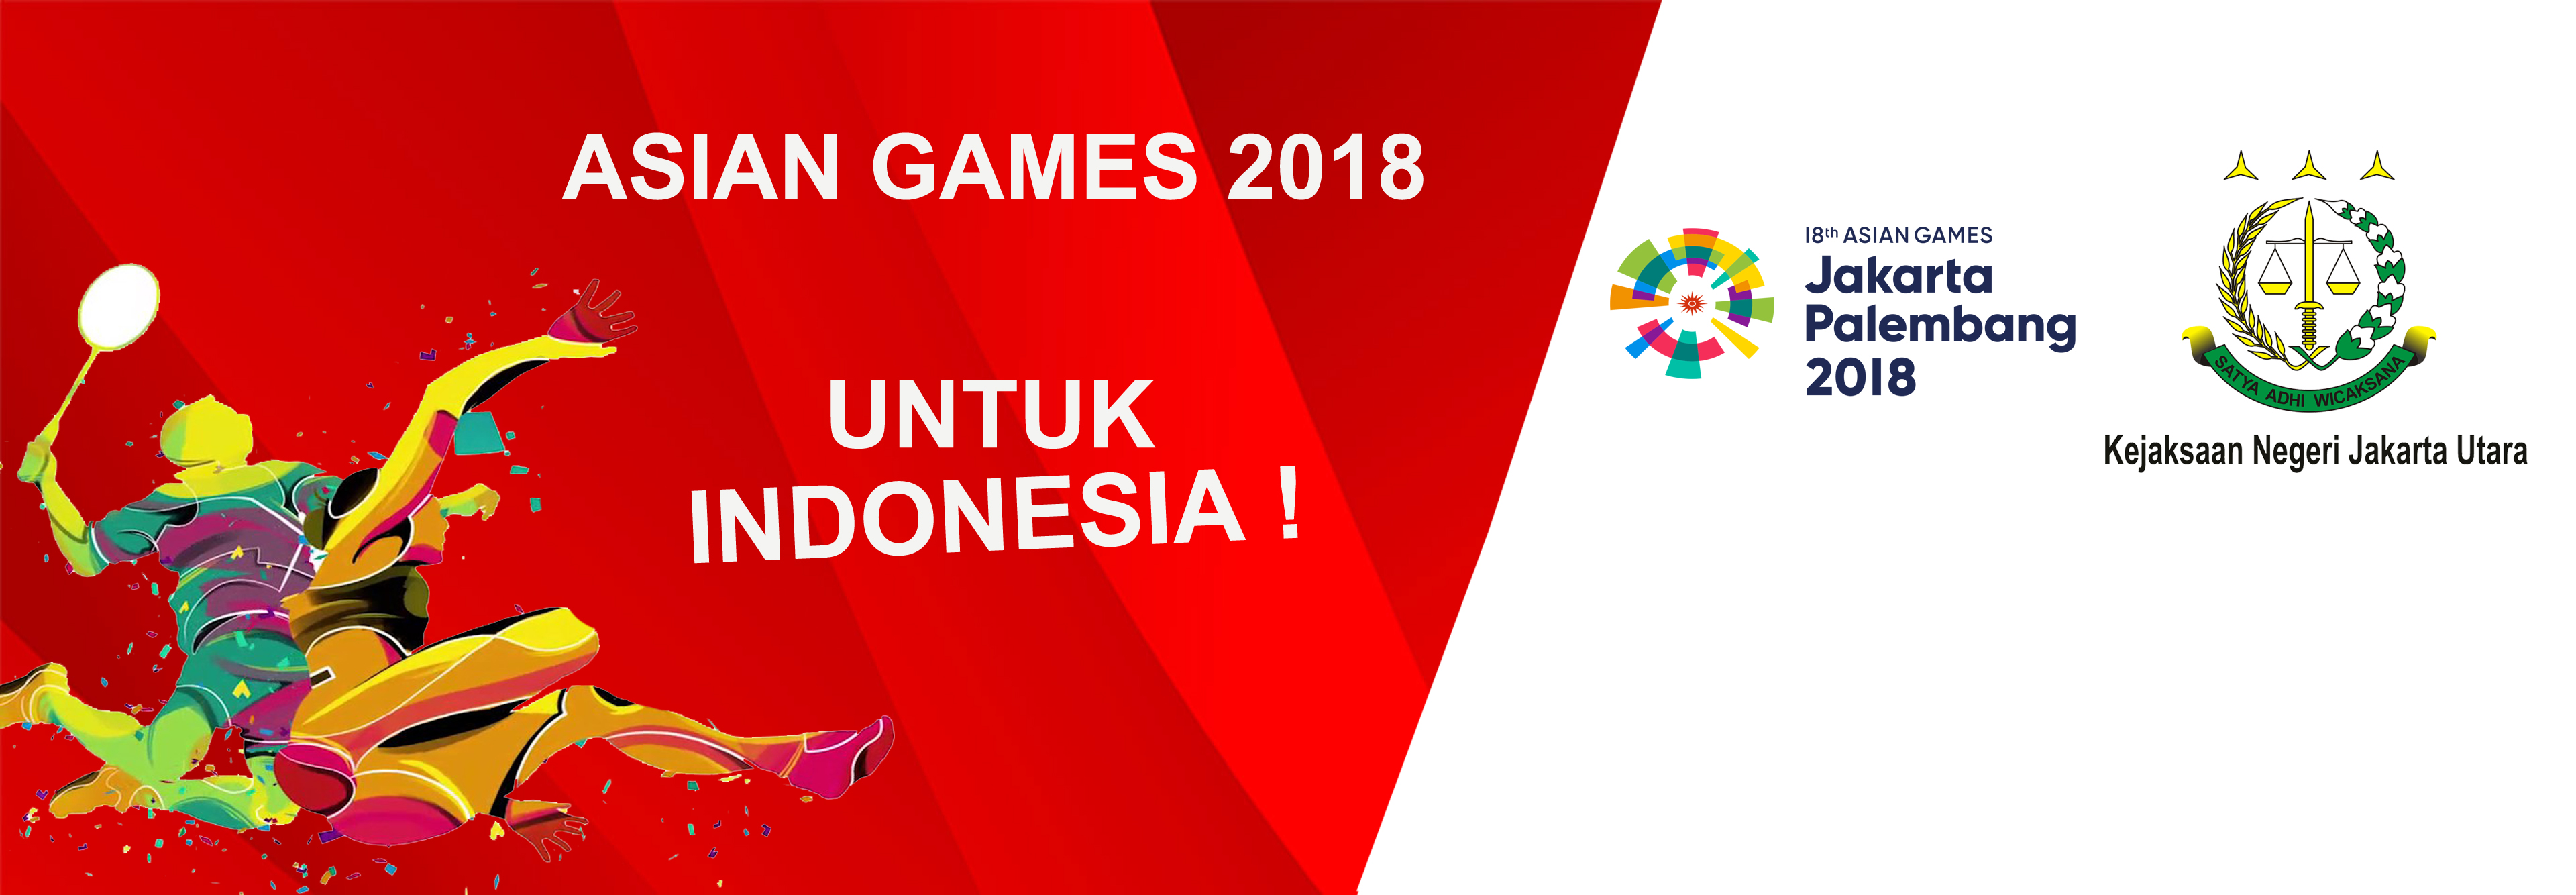 ASIAN-GAMES-2018-KEJARI-JAKUT.jpg